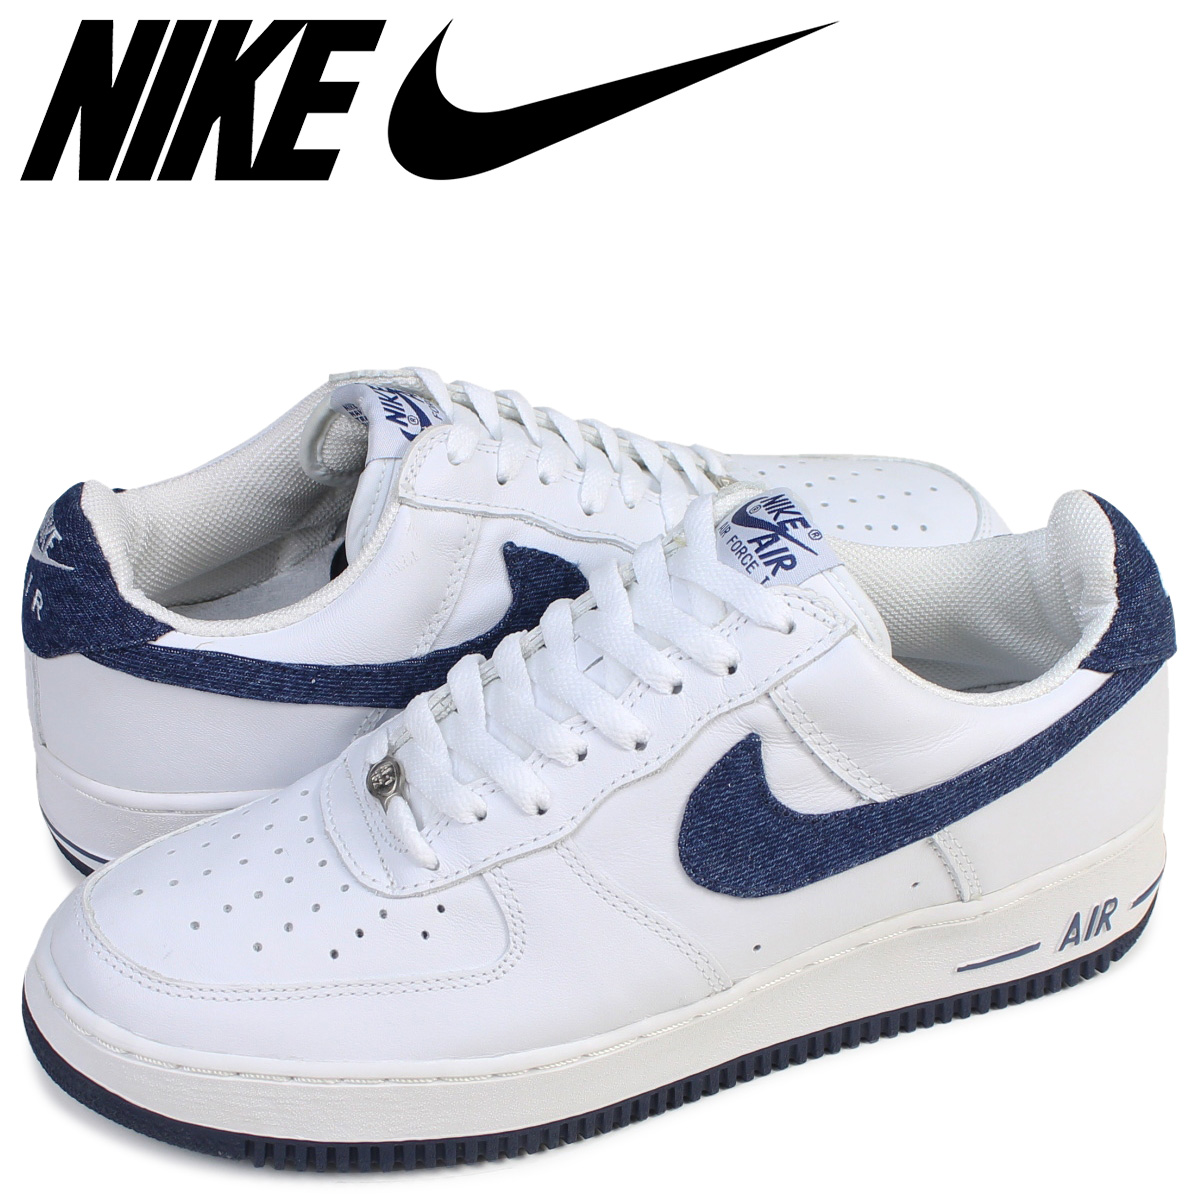 Nike Air Force 1 Mens, Cheap Nike Air Force 1 On www